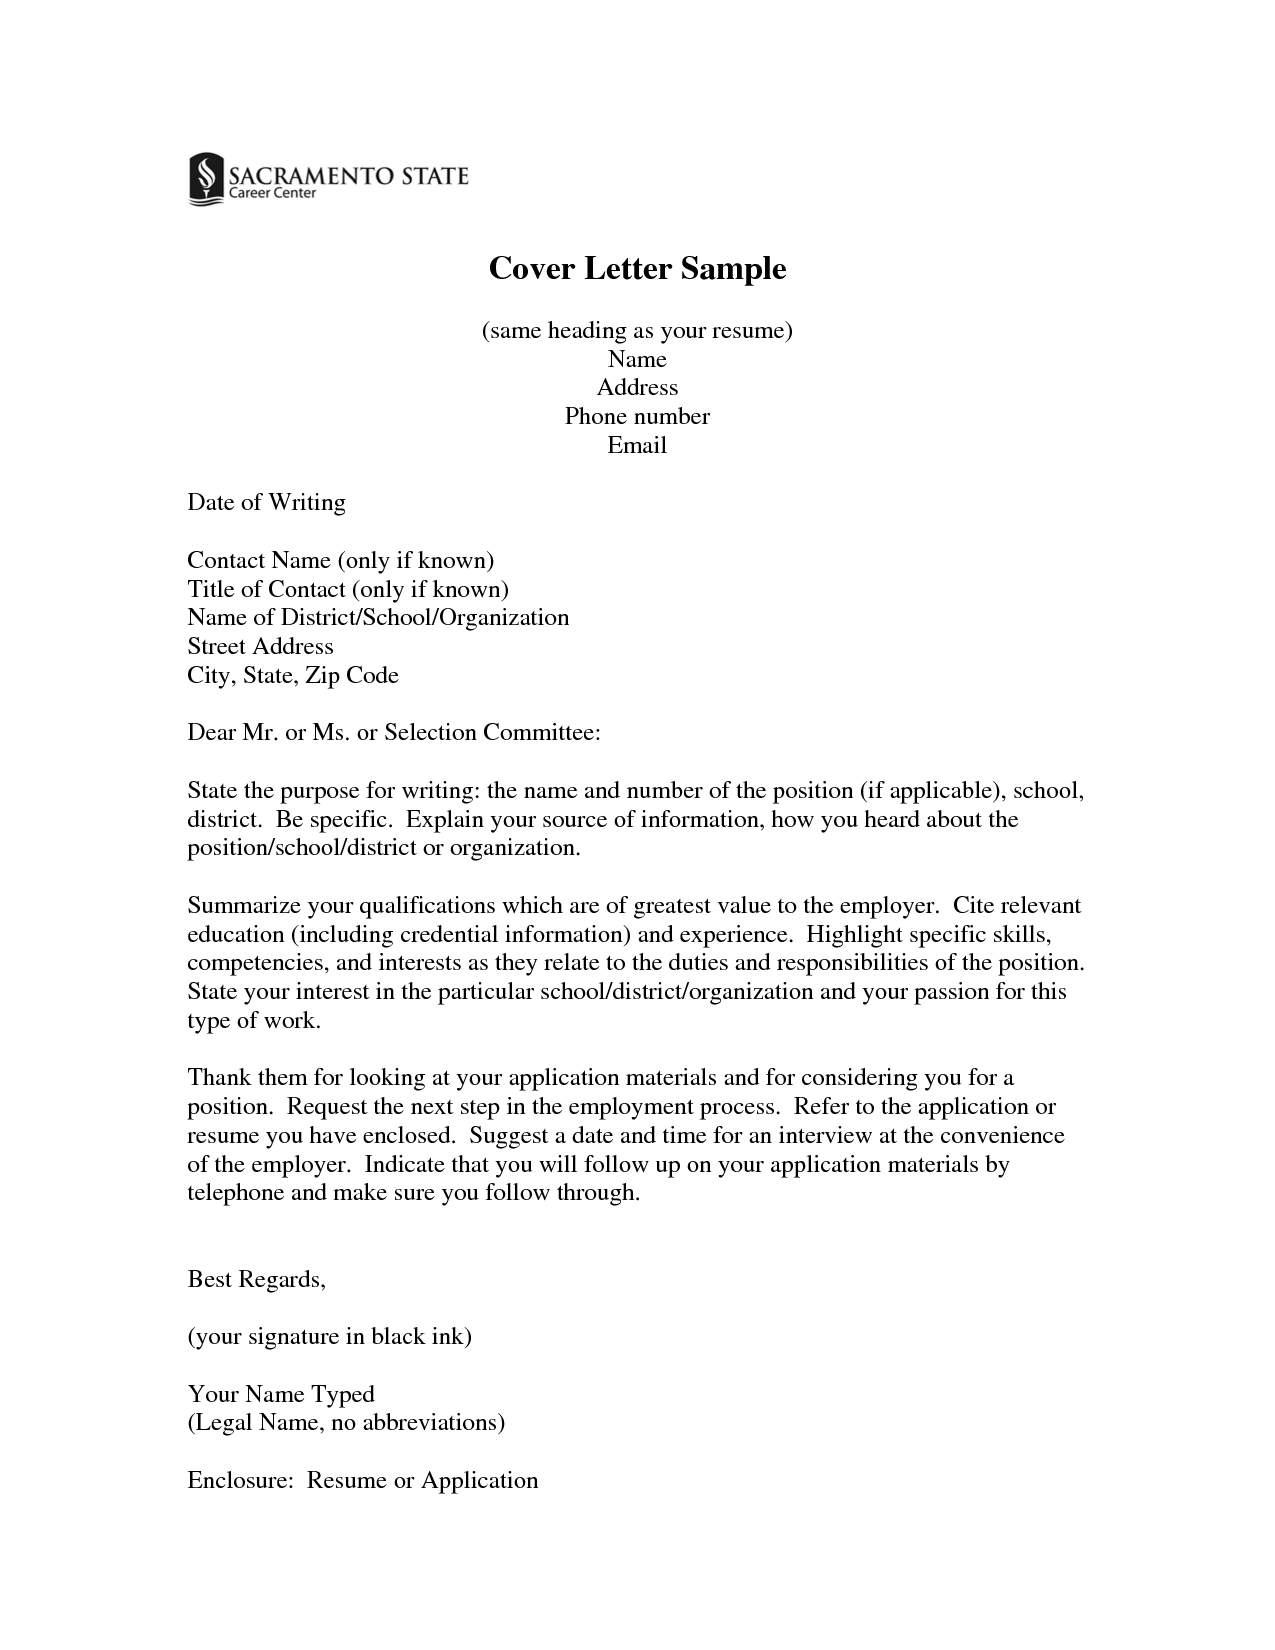 Same Cover Letters For Resume | Cover Letter Sample Same Heading As Your  Resume Name Address  Cover Resume Letter Examples